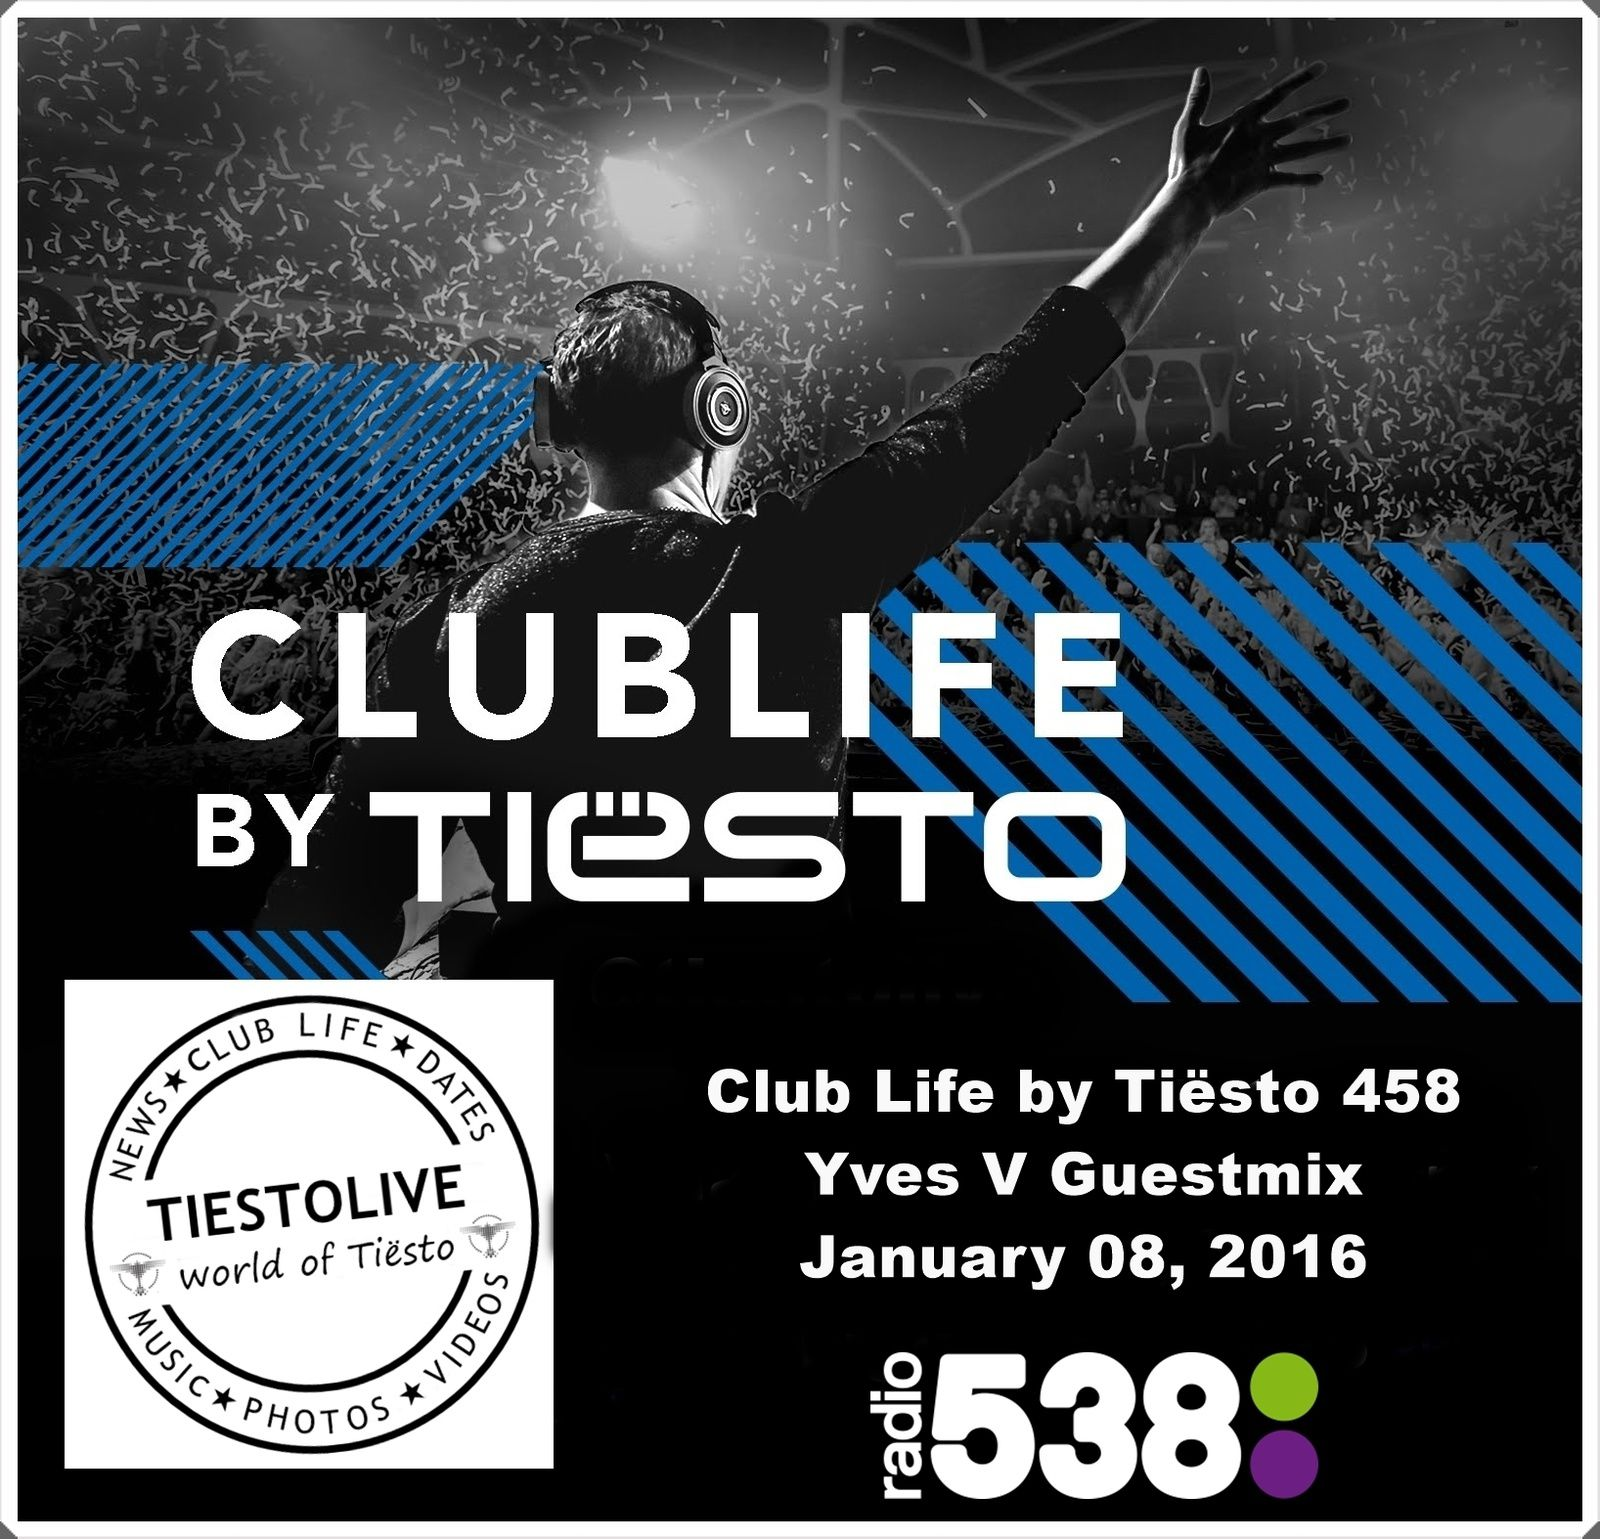 Club Life by Tiësto 458 - Yves V Guestmix - January 08, 2016